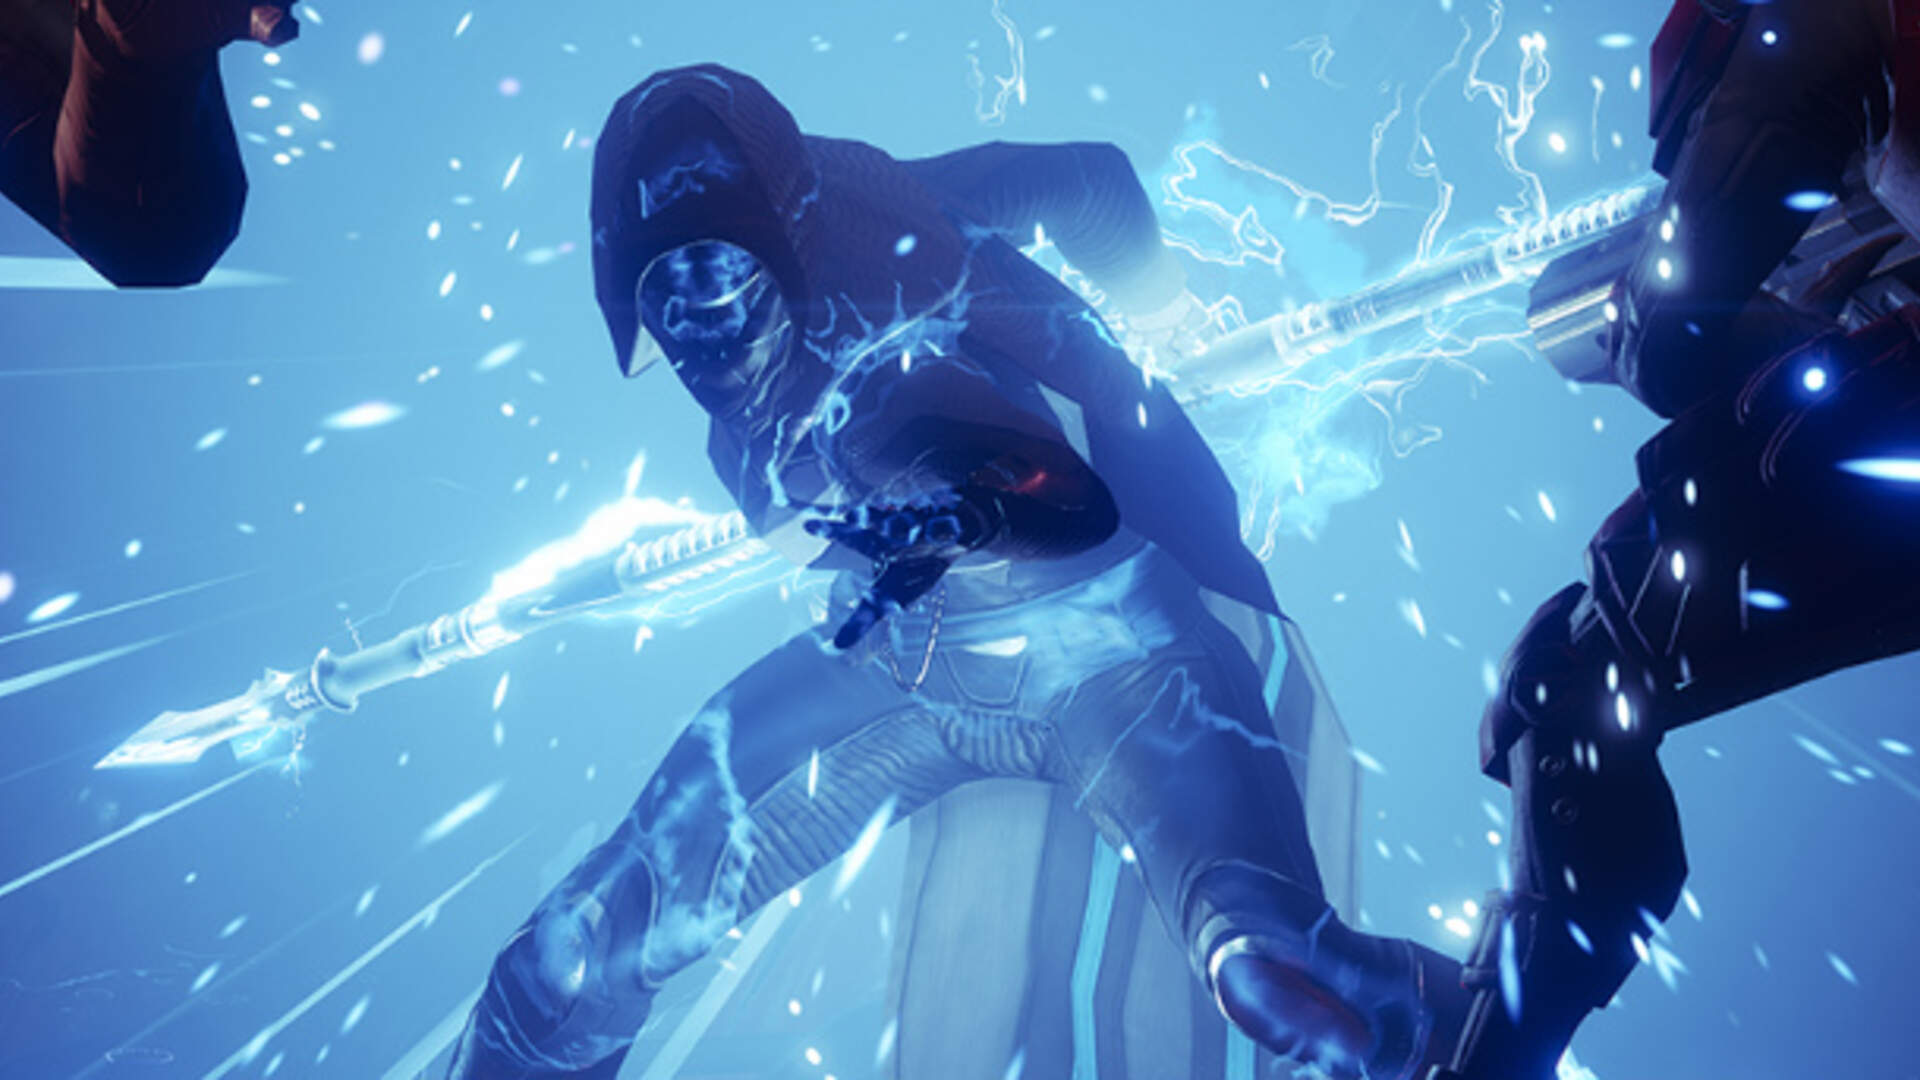 """Bungie Delays Anticipated Destiny 2 Features, Needs the Extra Time to Make Them """"Super Cool"""""""